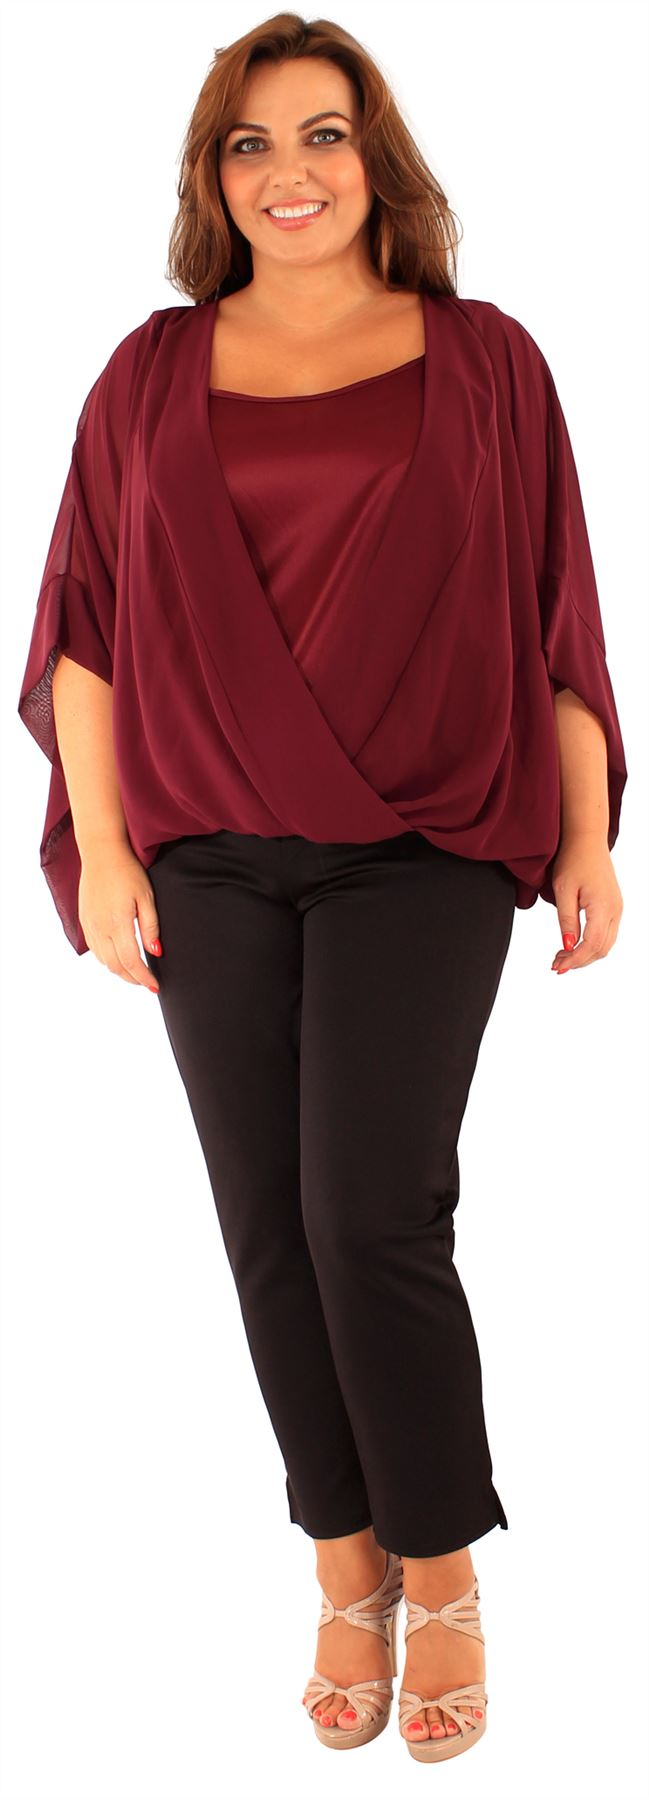 Find great deals on eBay for kimono top plus size. Shop with confidence.